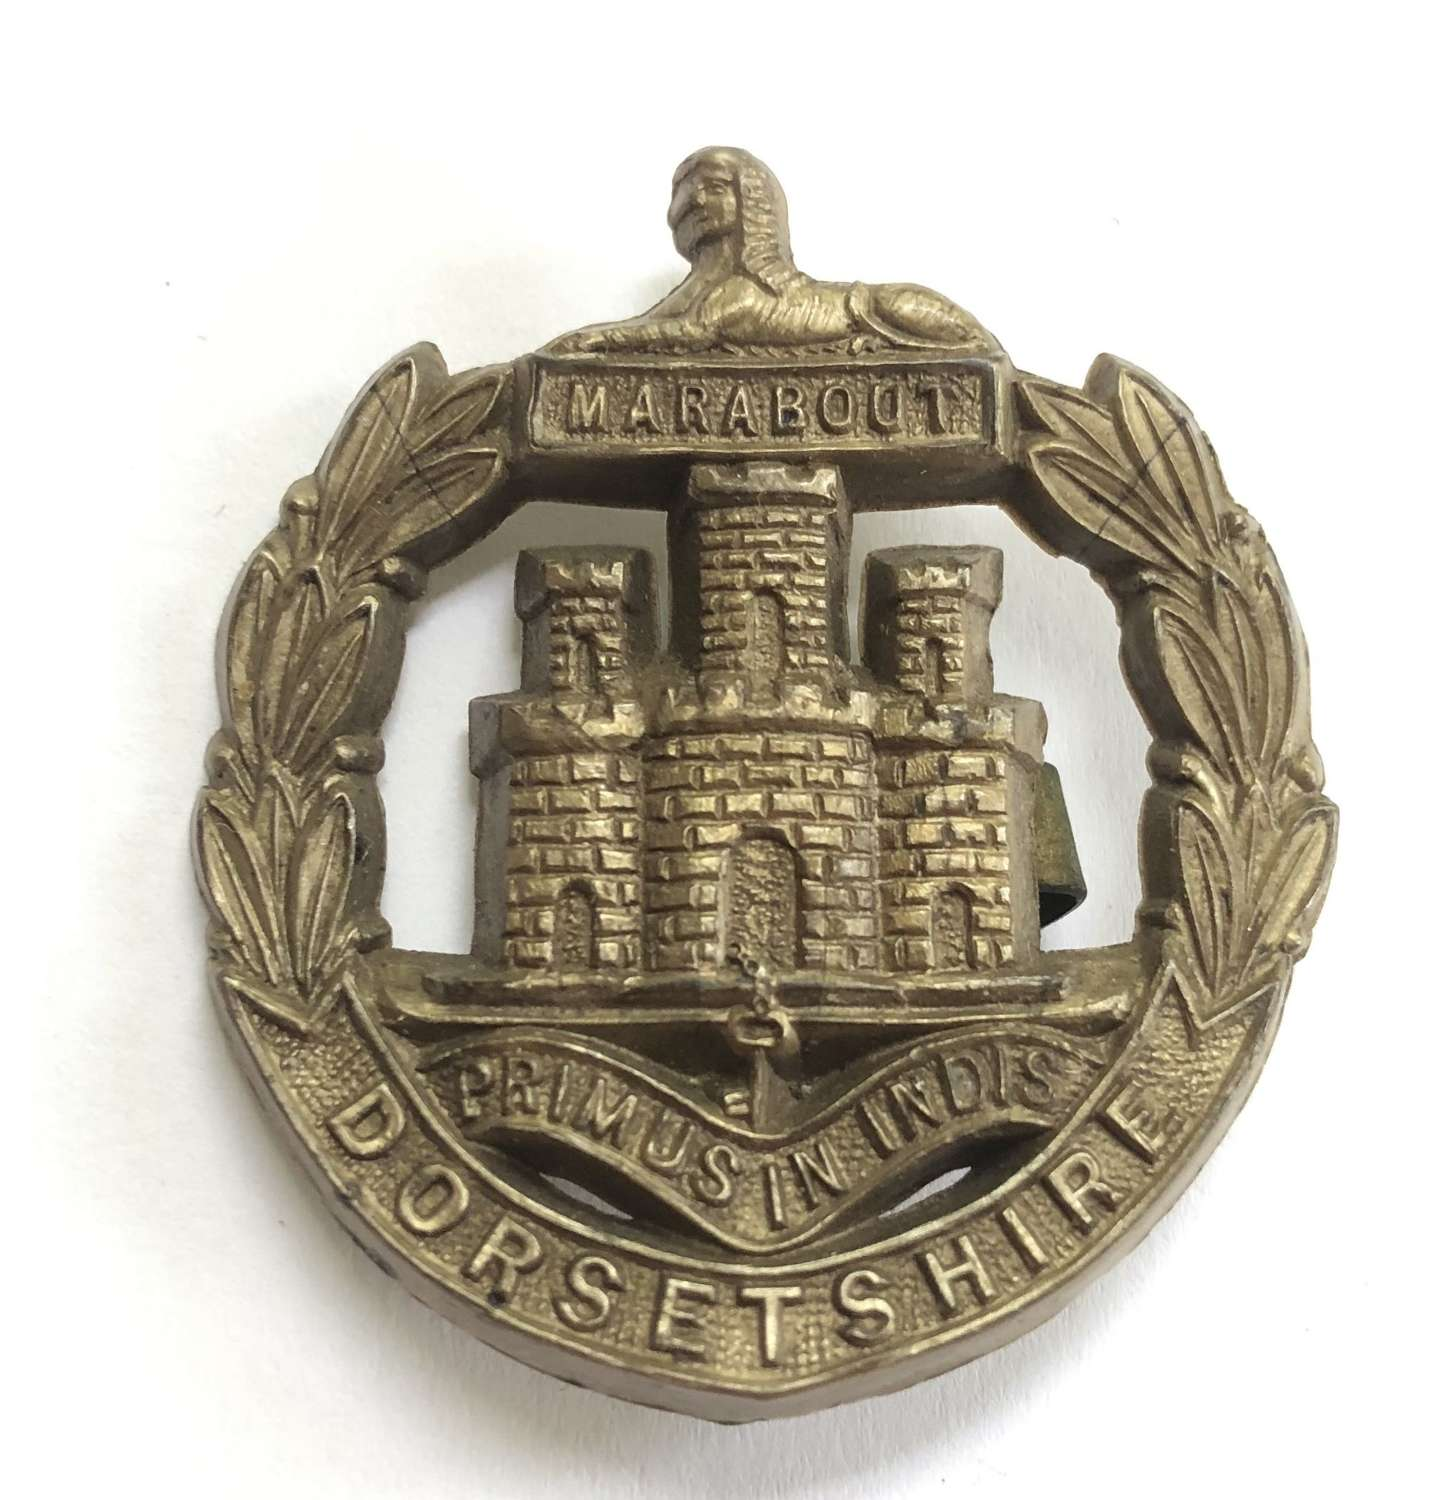 Dorsetshire Regiment WW2 plastic economy cap badge